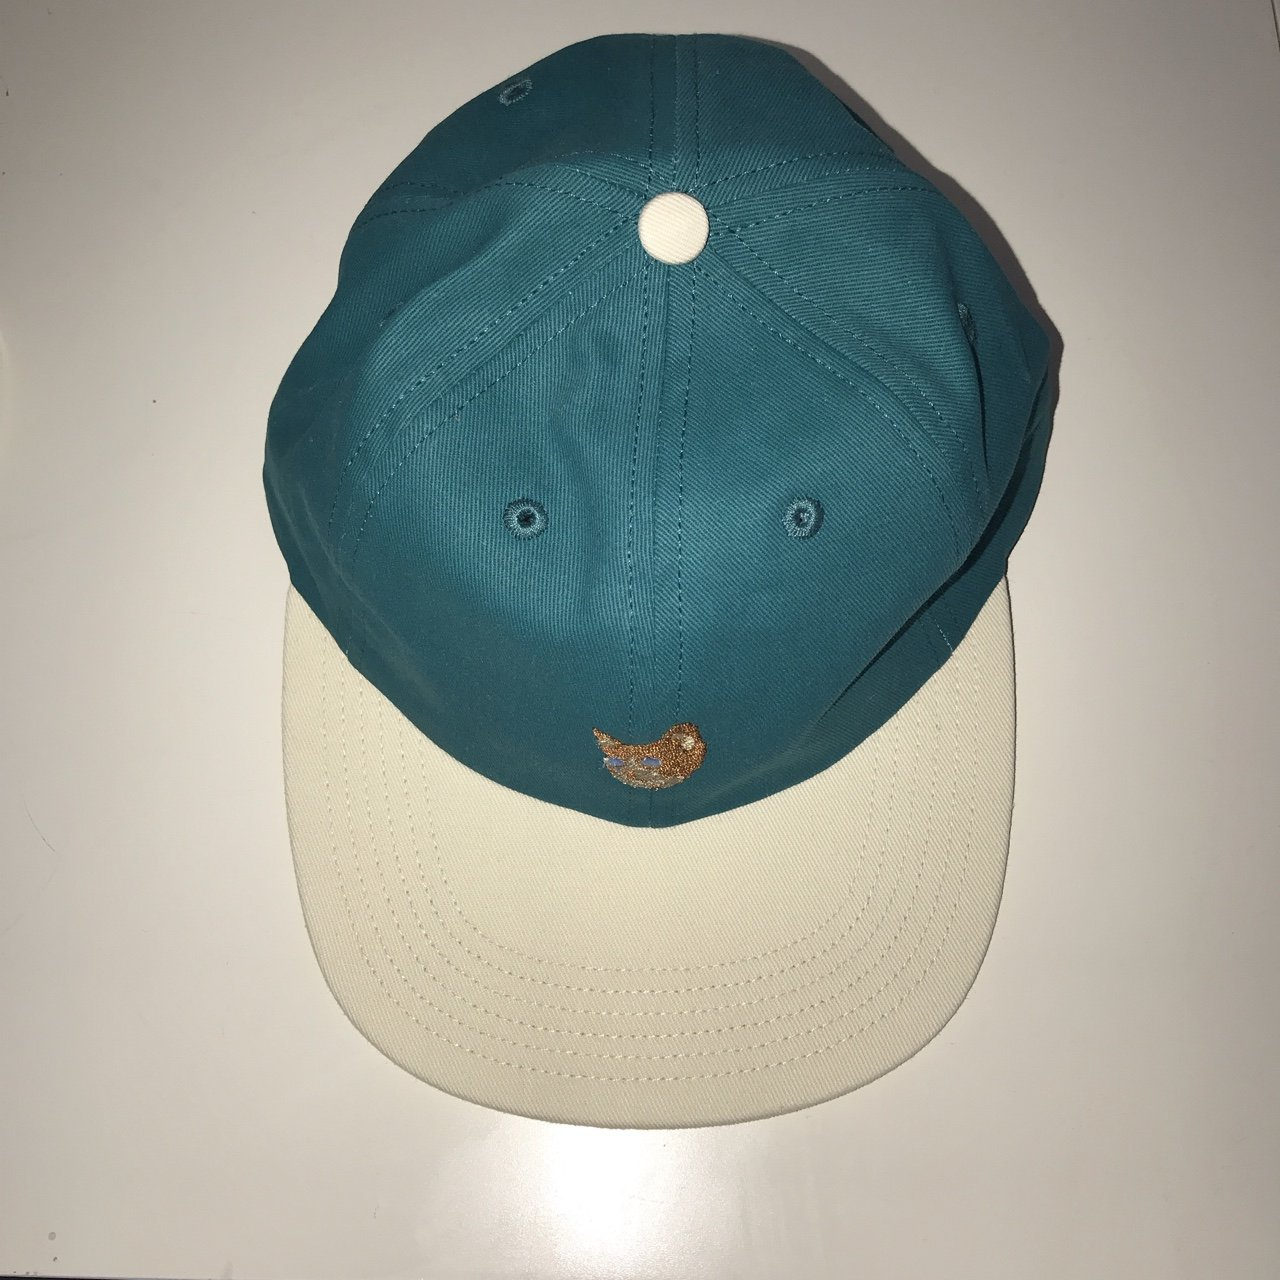 cb44025f6ee Golf Wang Kill Cat hat — deadstock 10 10 condition — PM me - Depop